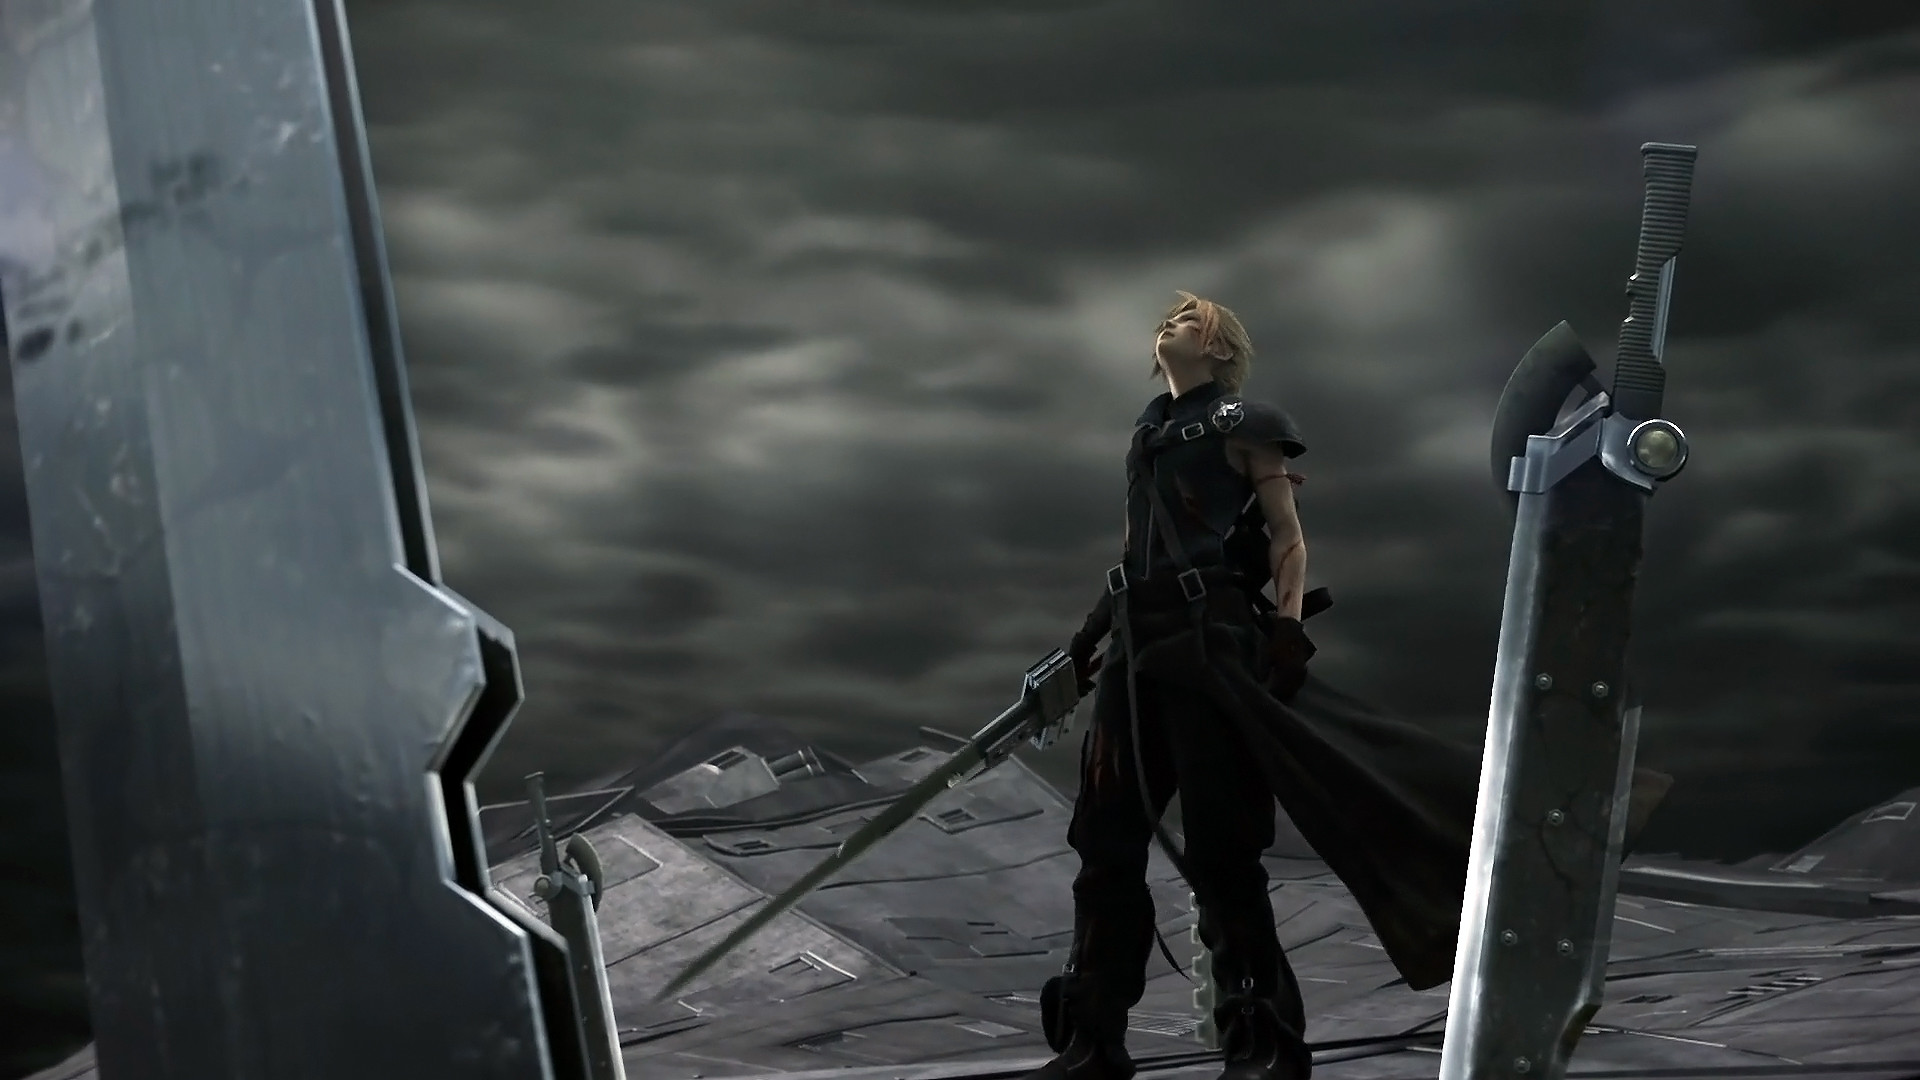 Cloud Strife Wallpaper 68 Images